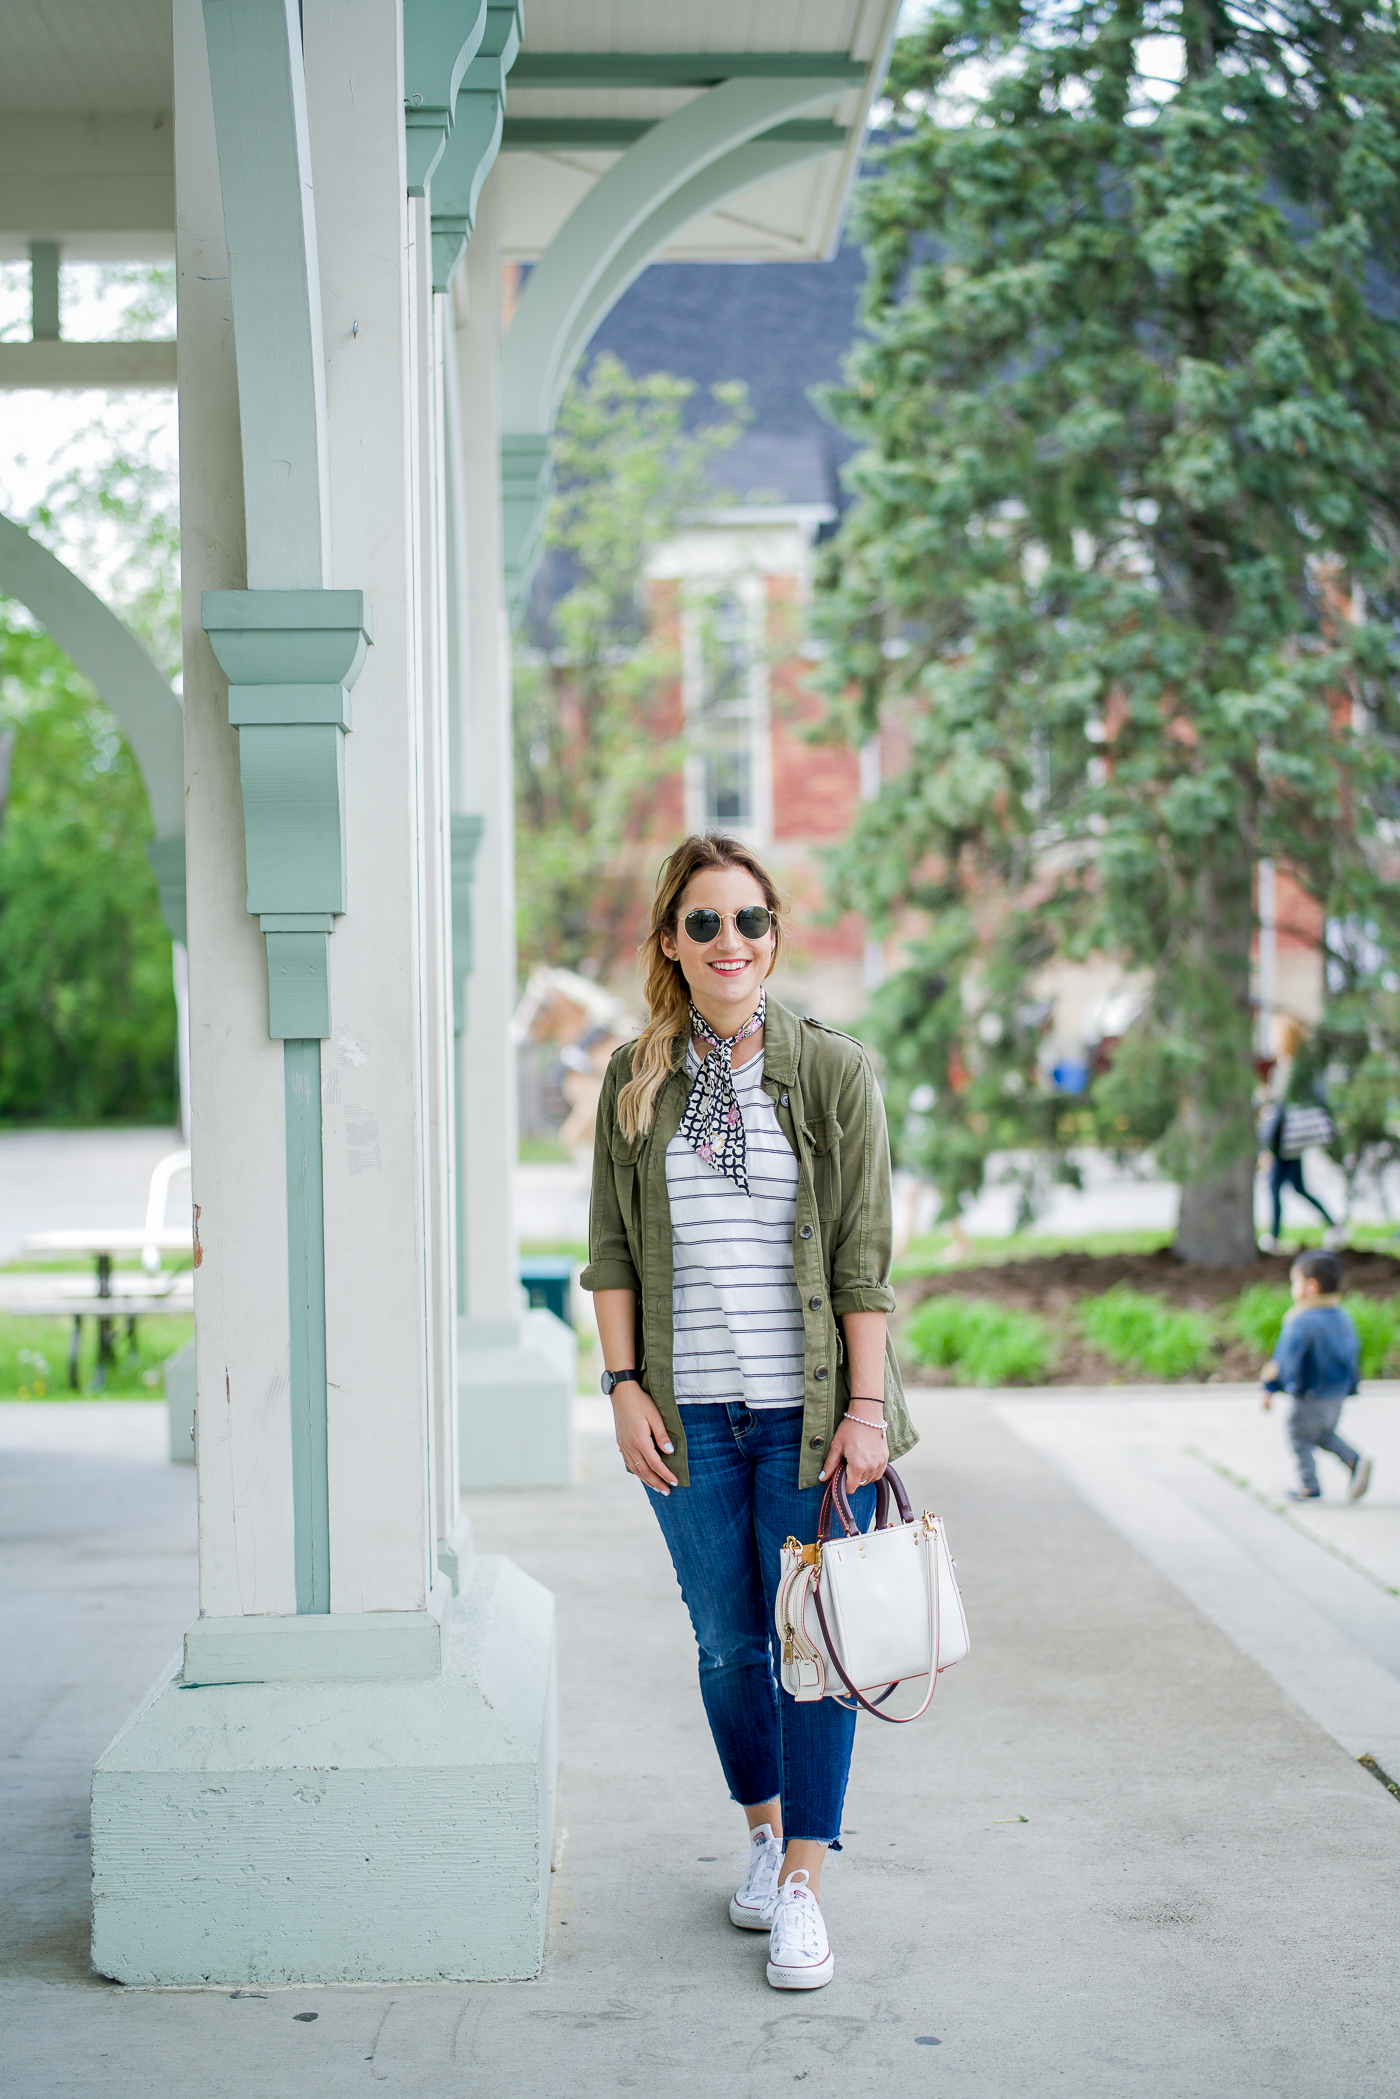 Wearing a simple, casual outfit to explore Markham's Main Street Unionville during spring